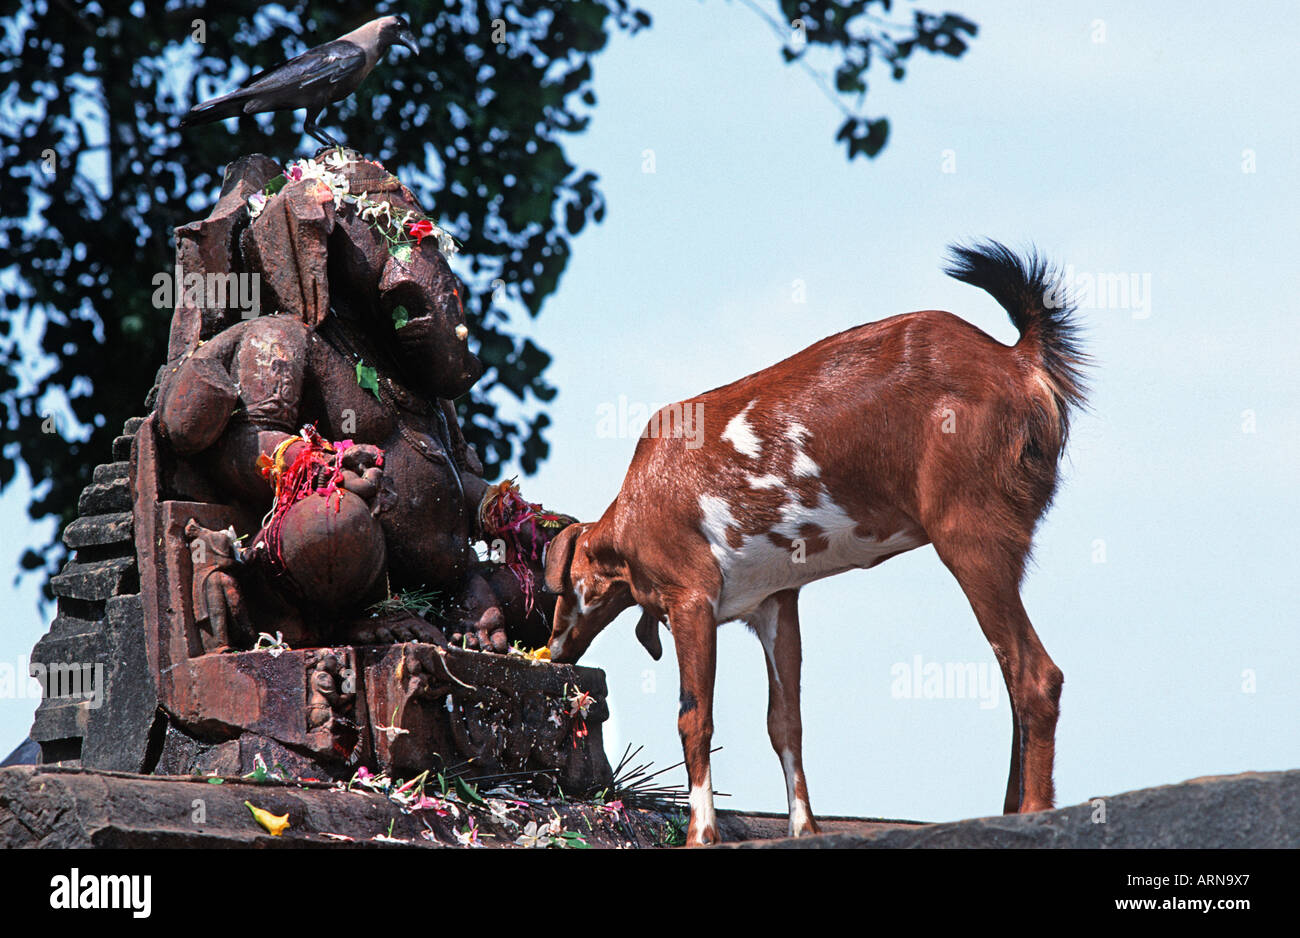 A goat eating the petals of flowers left by supplicants at a shrine to Ganesh Khajuraho Madyha Pradesh India - Stock Image